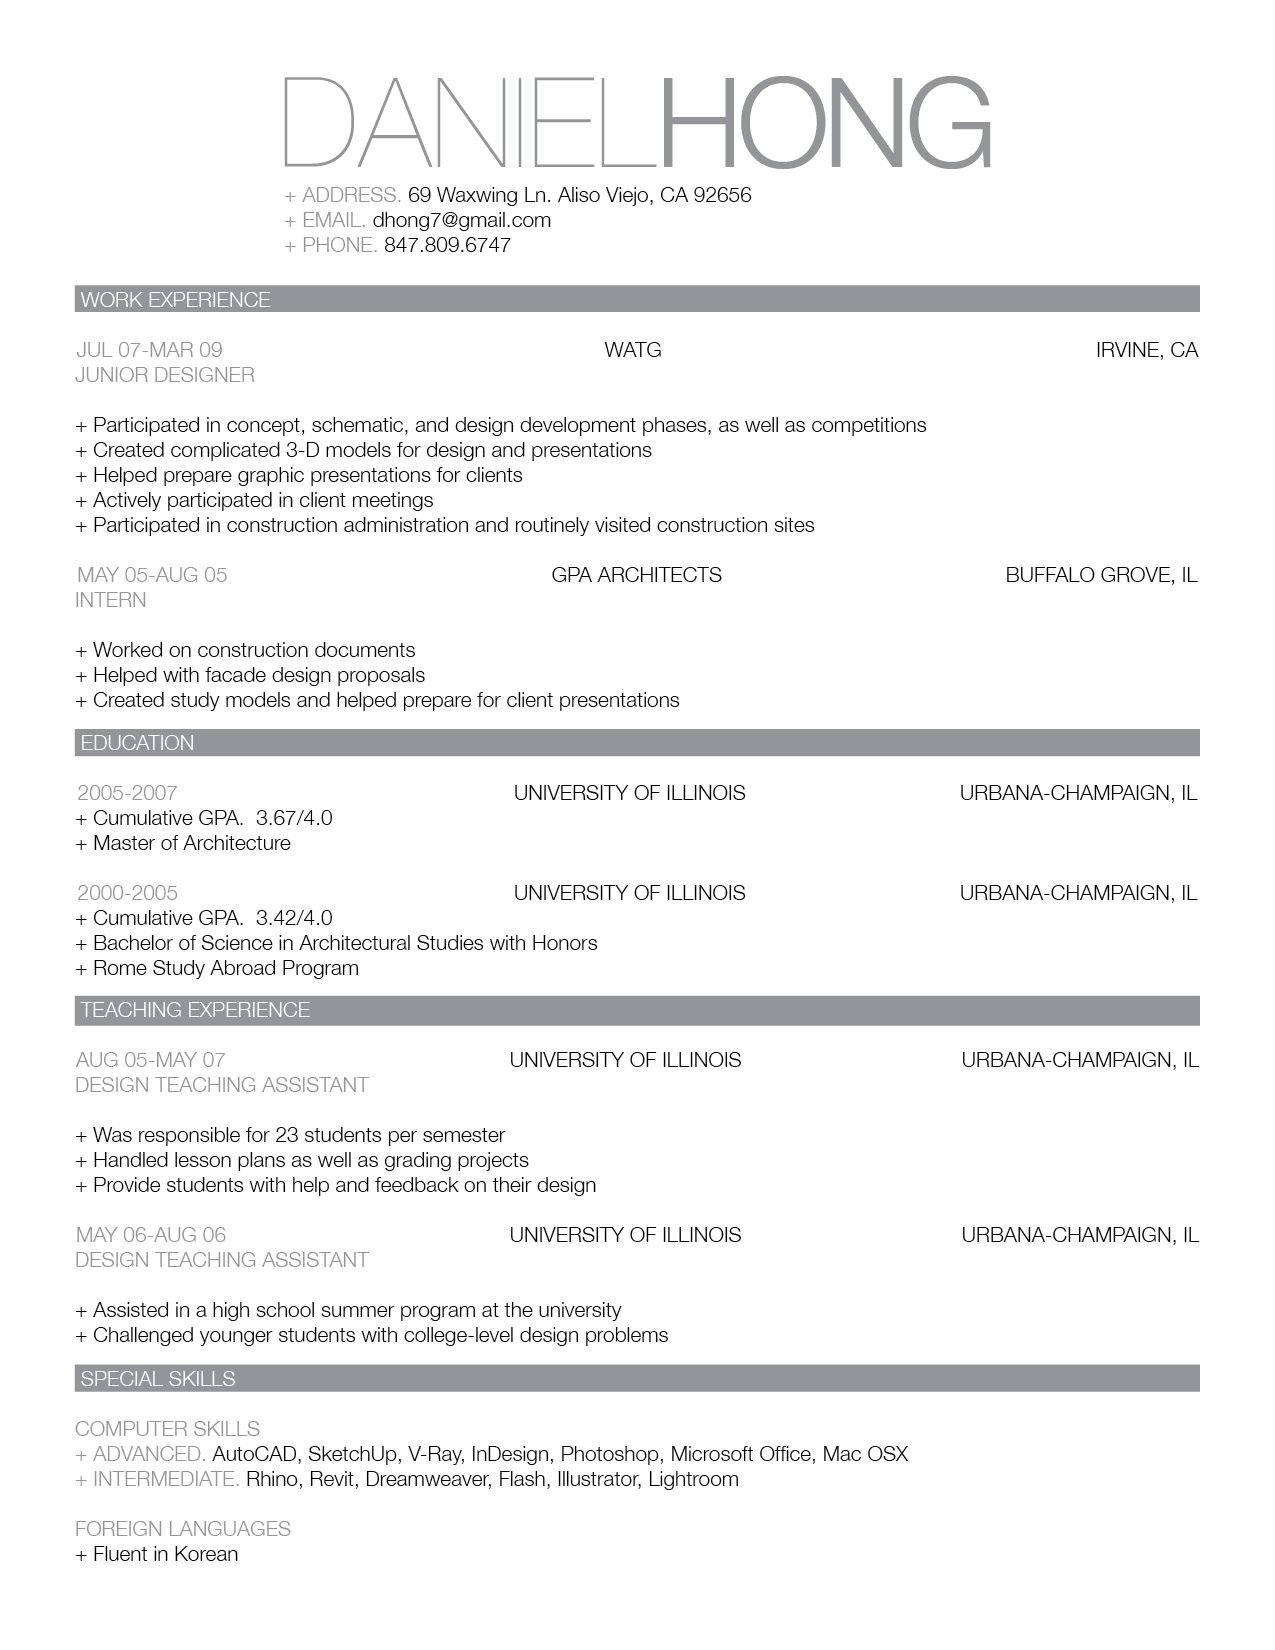 Resume Samples For Professionals Updated Cv And Work Sample Professional Resume Sample